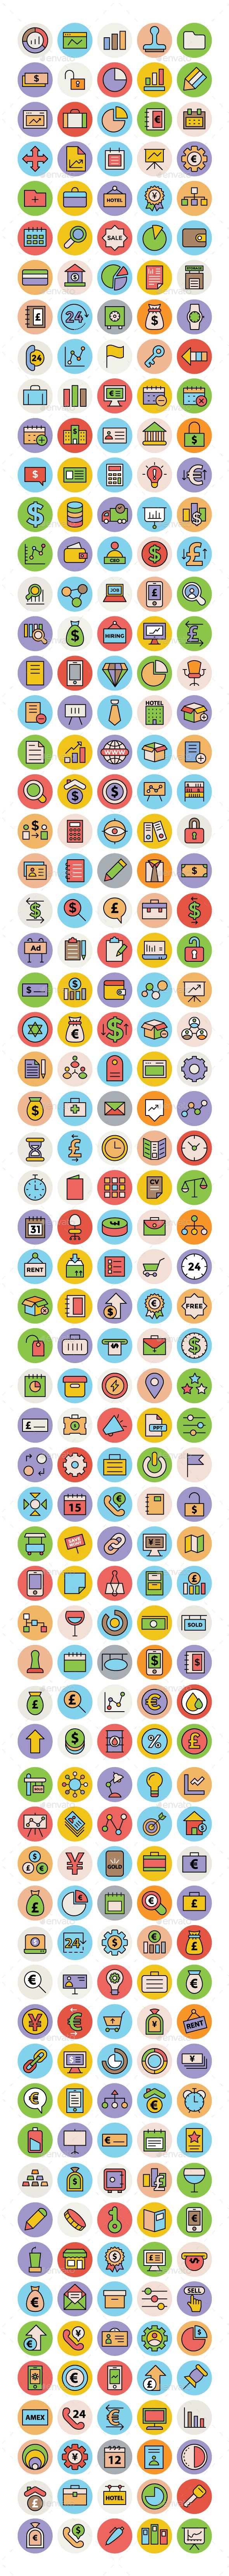 300+ Business and Office Icons. Download here: http://graphicriver.net/item/300-business-and-office-icons/16563122?ref=ksioks